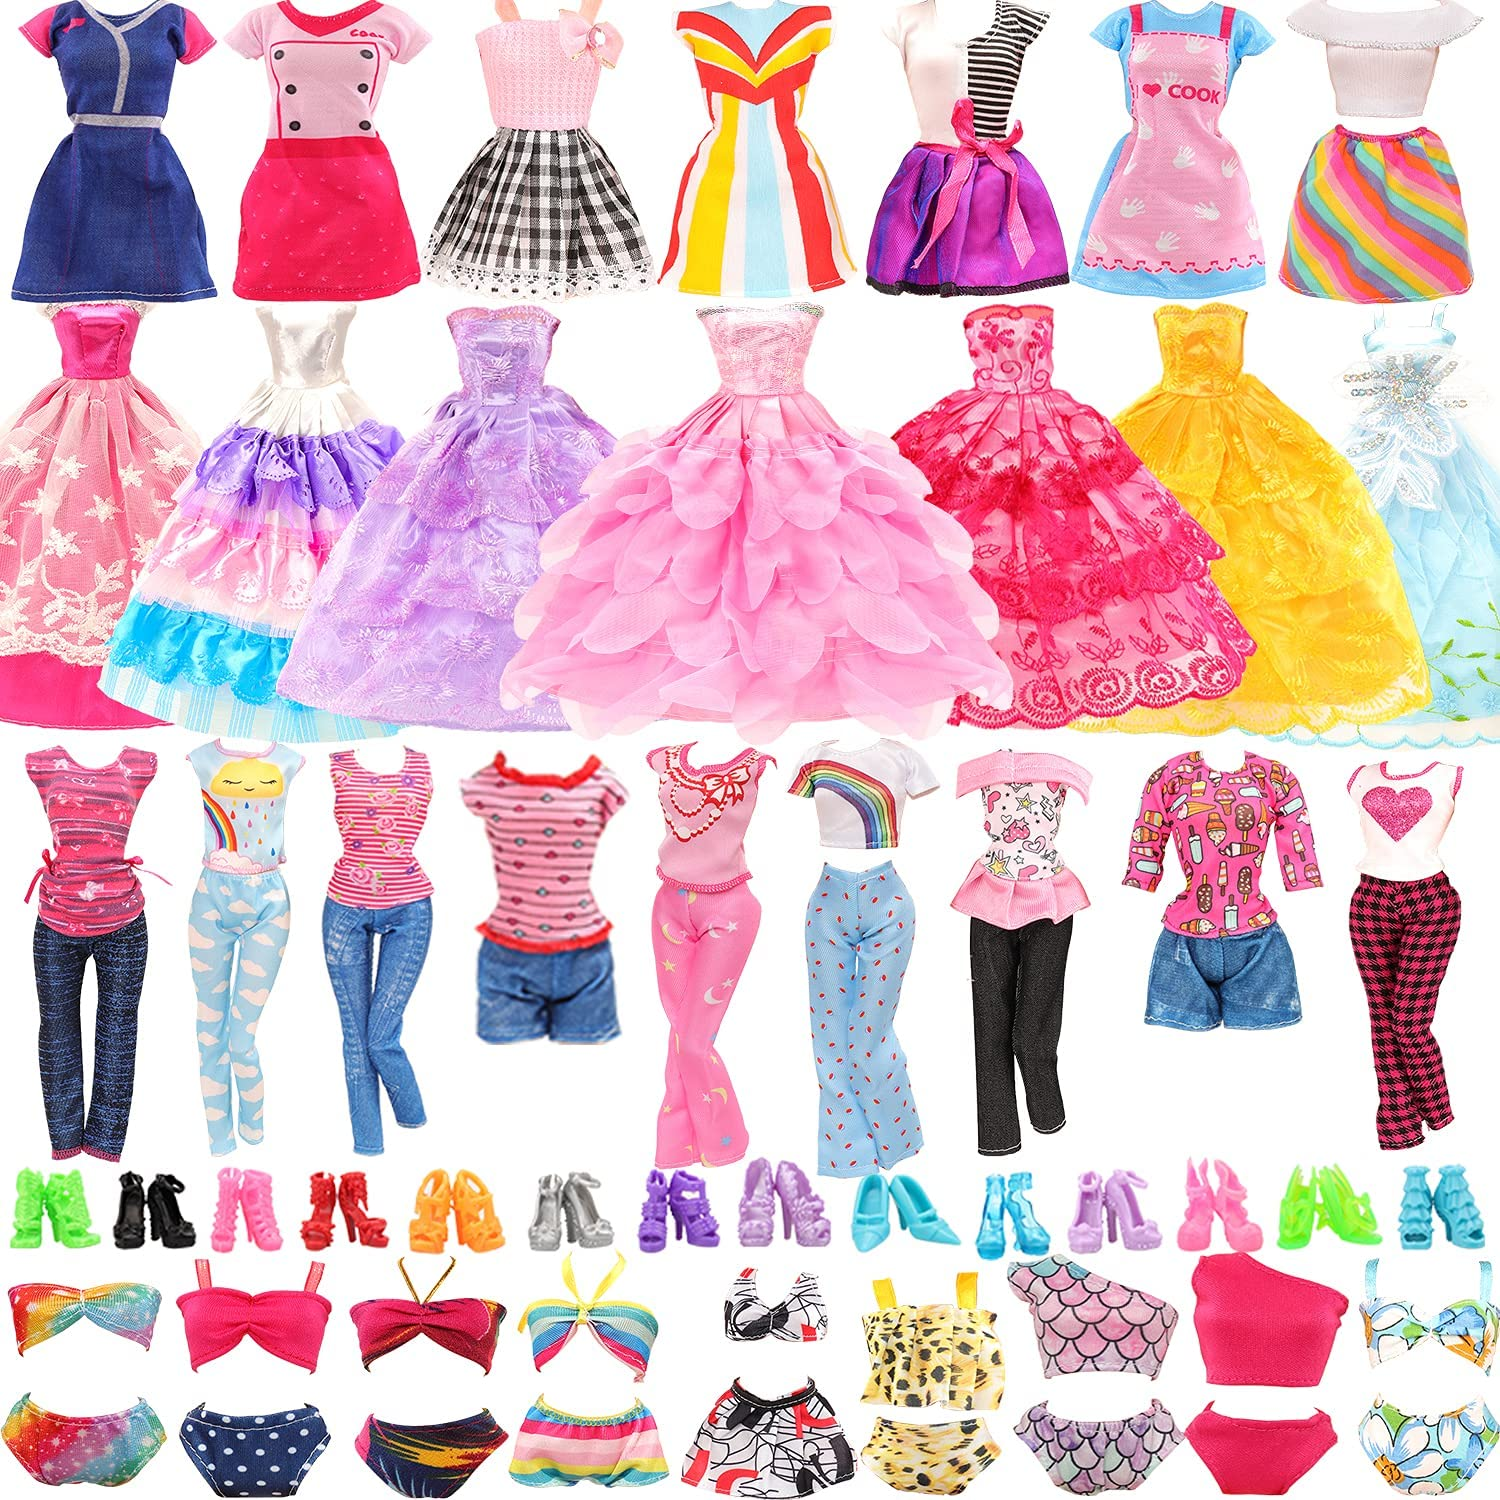 BM 22 Pack Doll Ranking TOP10 Clothes Discount is also underway and 4 Accessories PCS 2 Fashion Dresses